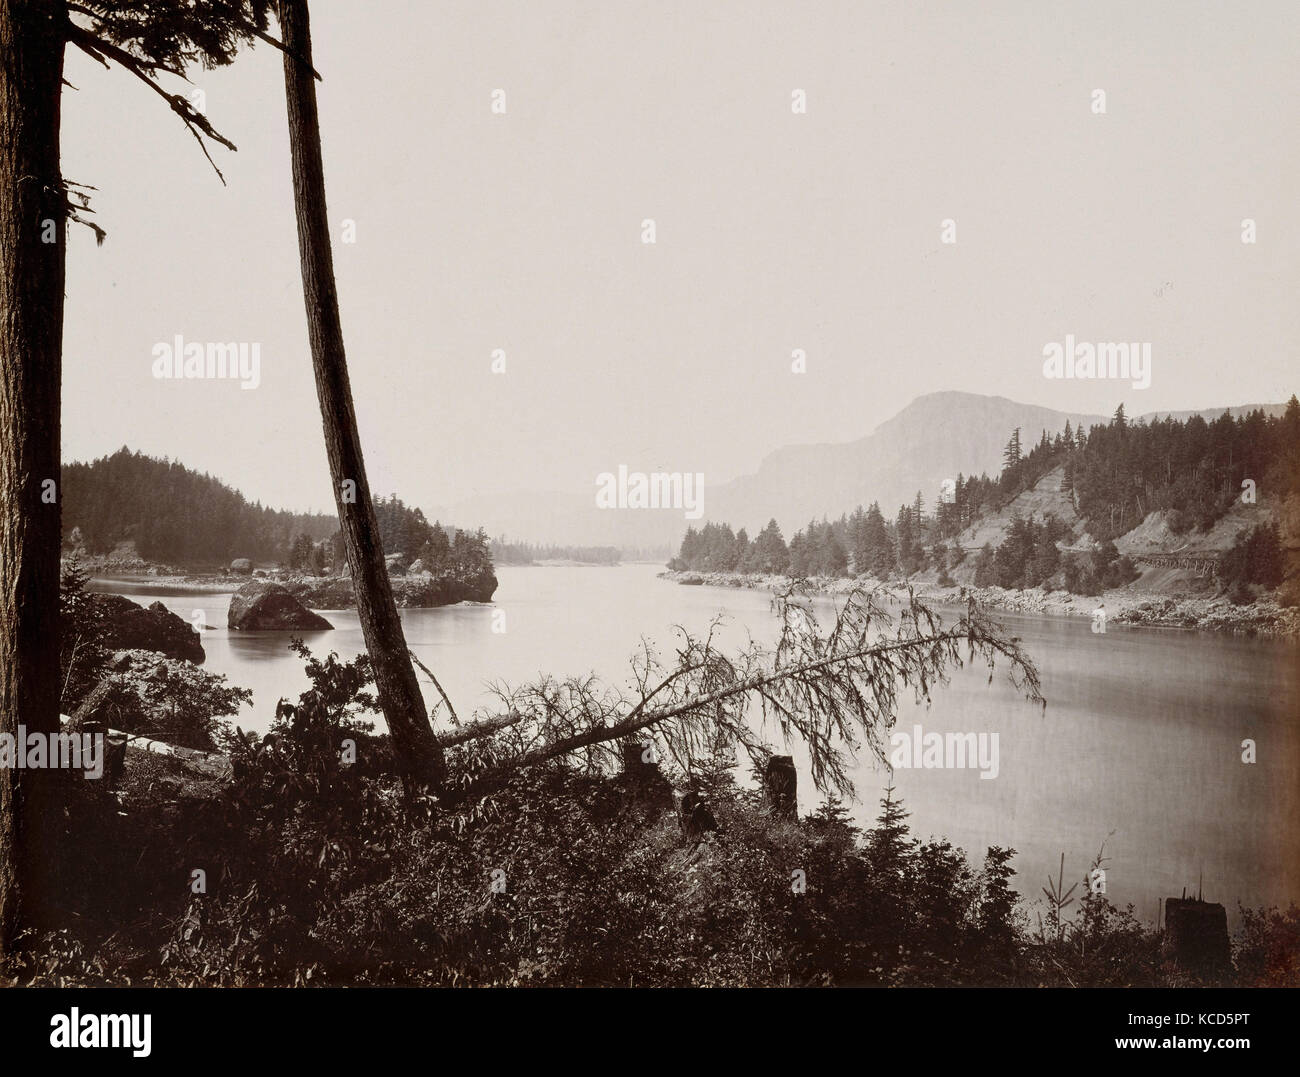 View on the Columbia, Cascades, Carleton E. Watkins, 1867 - Stock Image